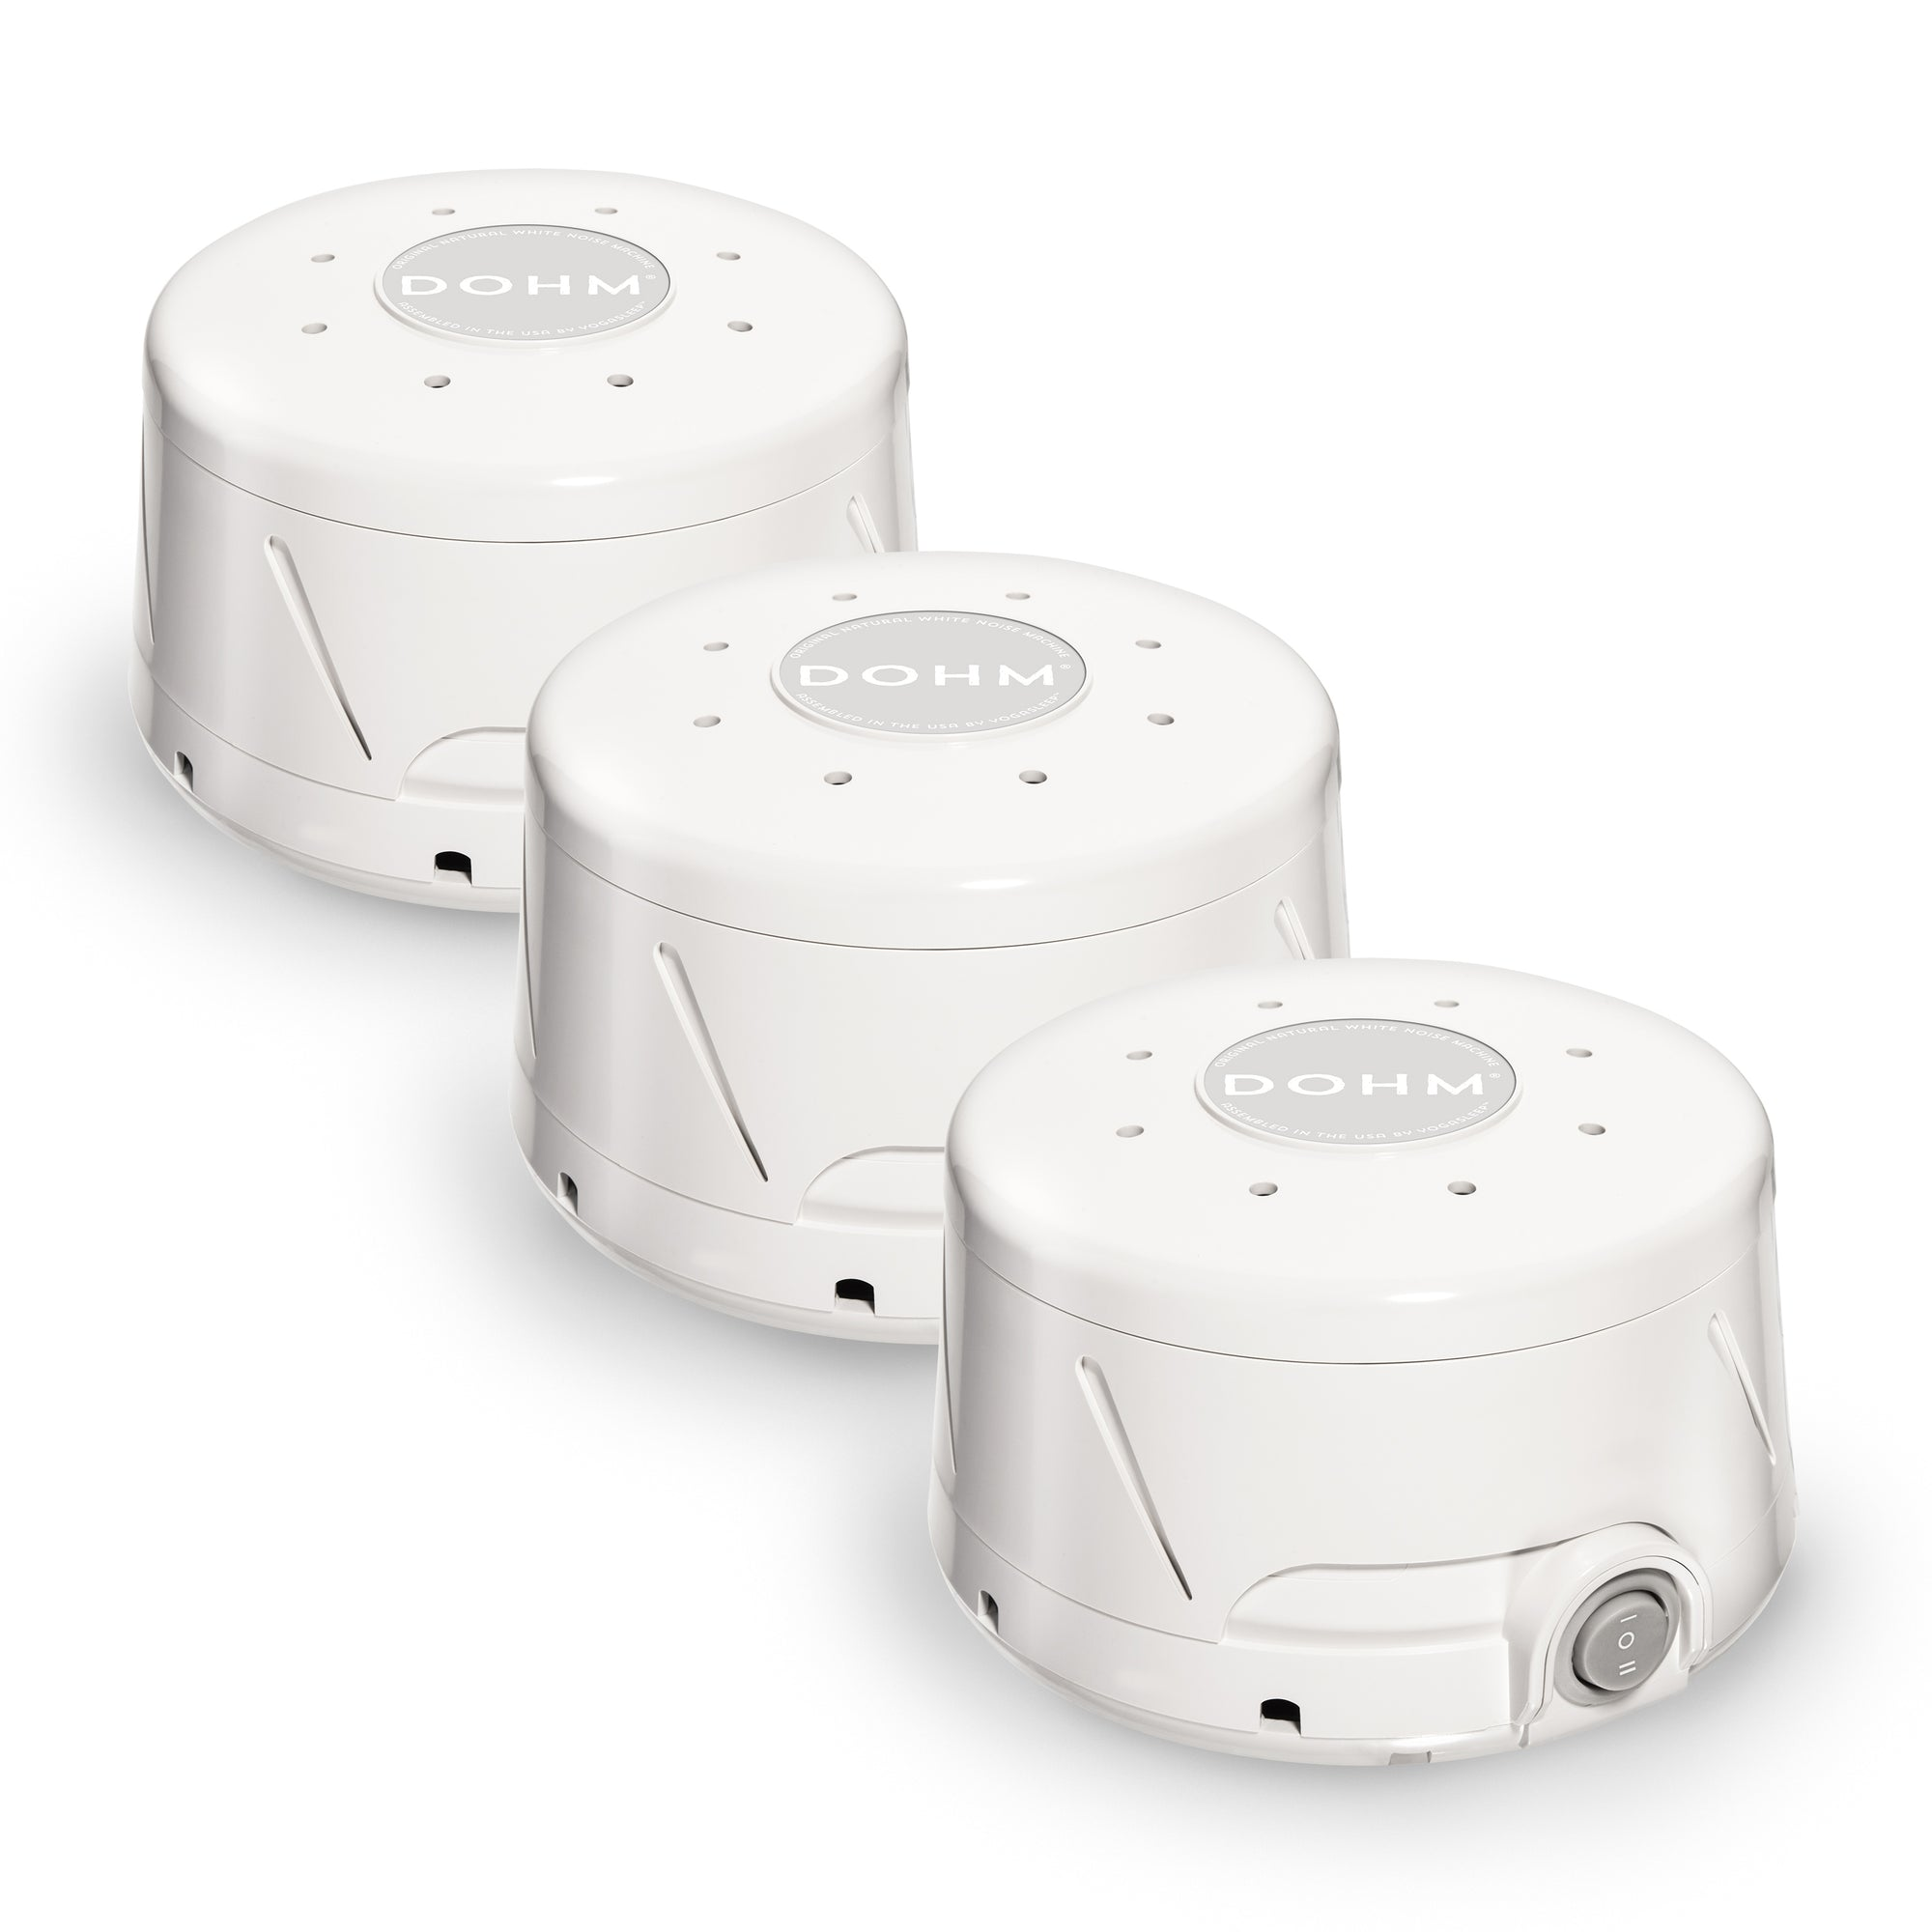 Dohm Classic White Sound Machine Bundle 3-Pack | Yogasleep